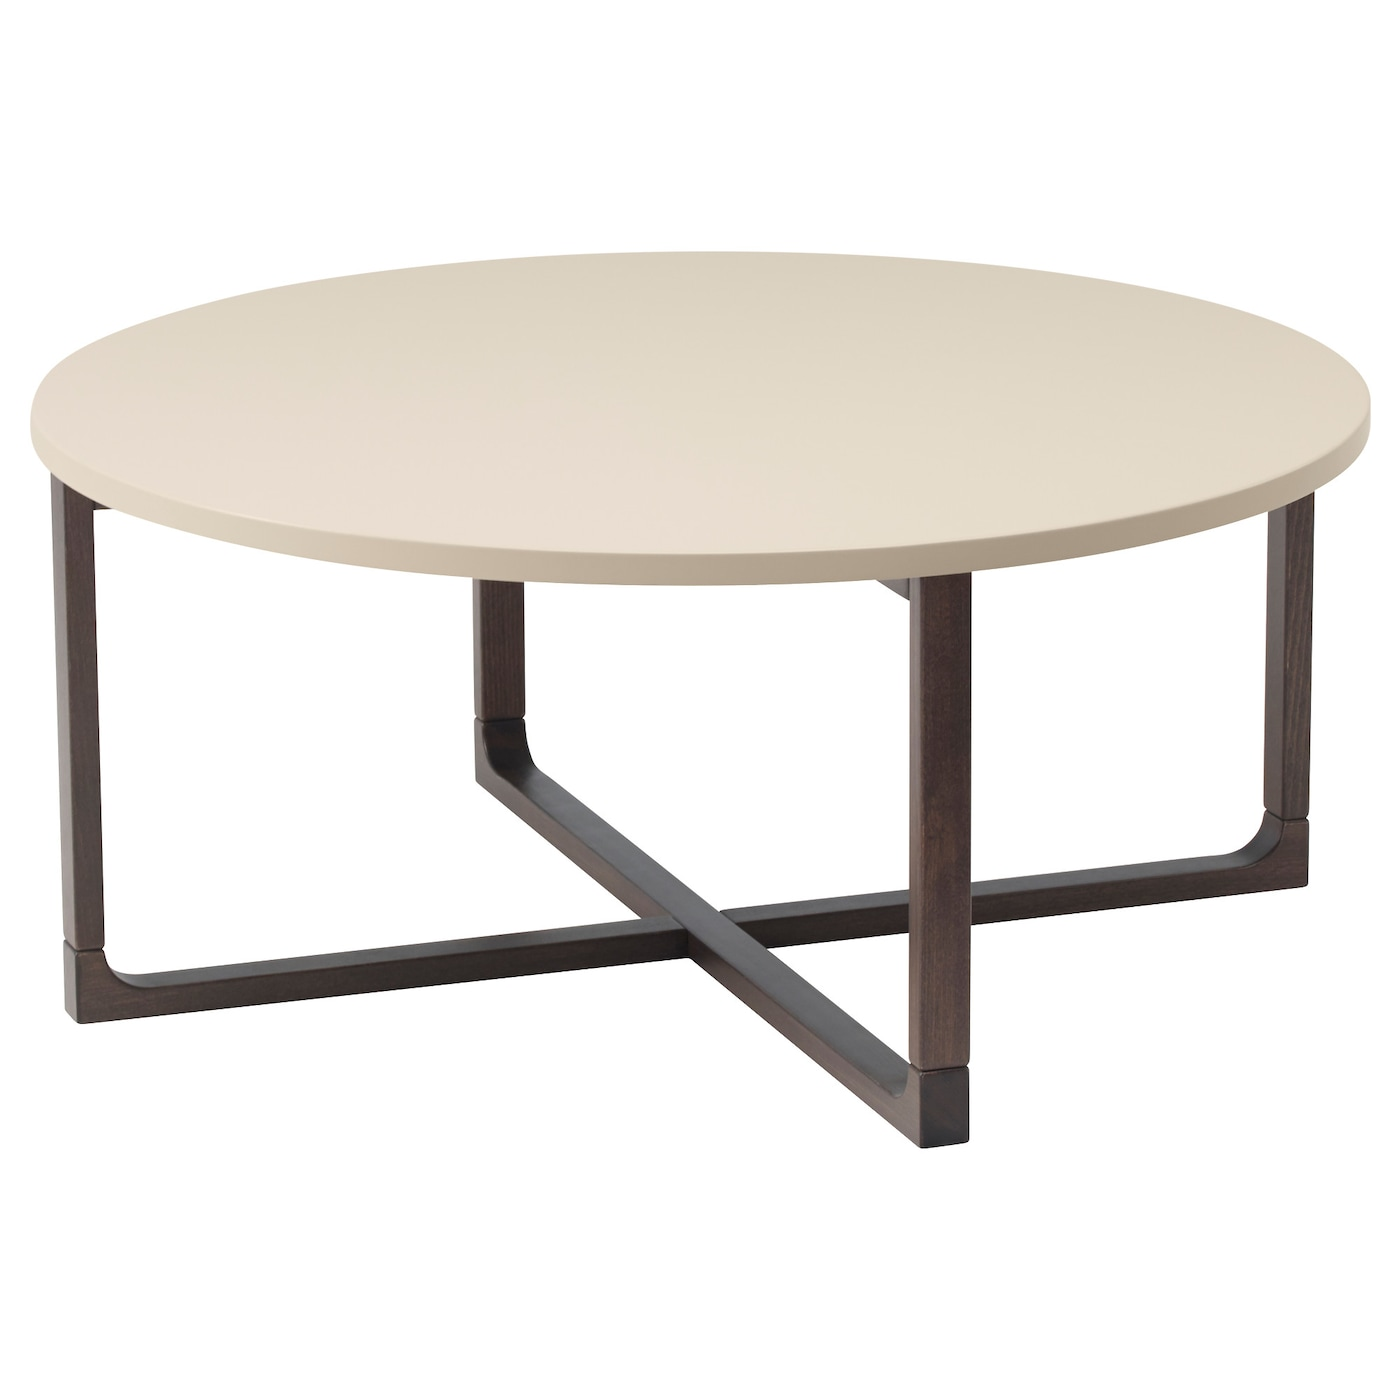 IKEA RISSNA Coffee Table The High Gloss Surfaces Reflect Light And